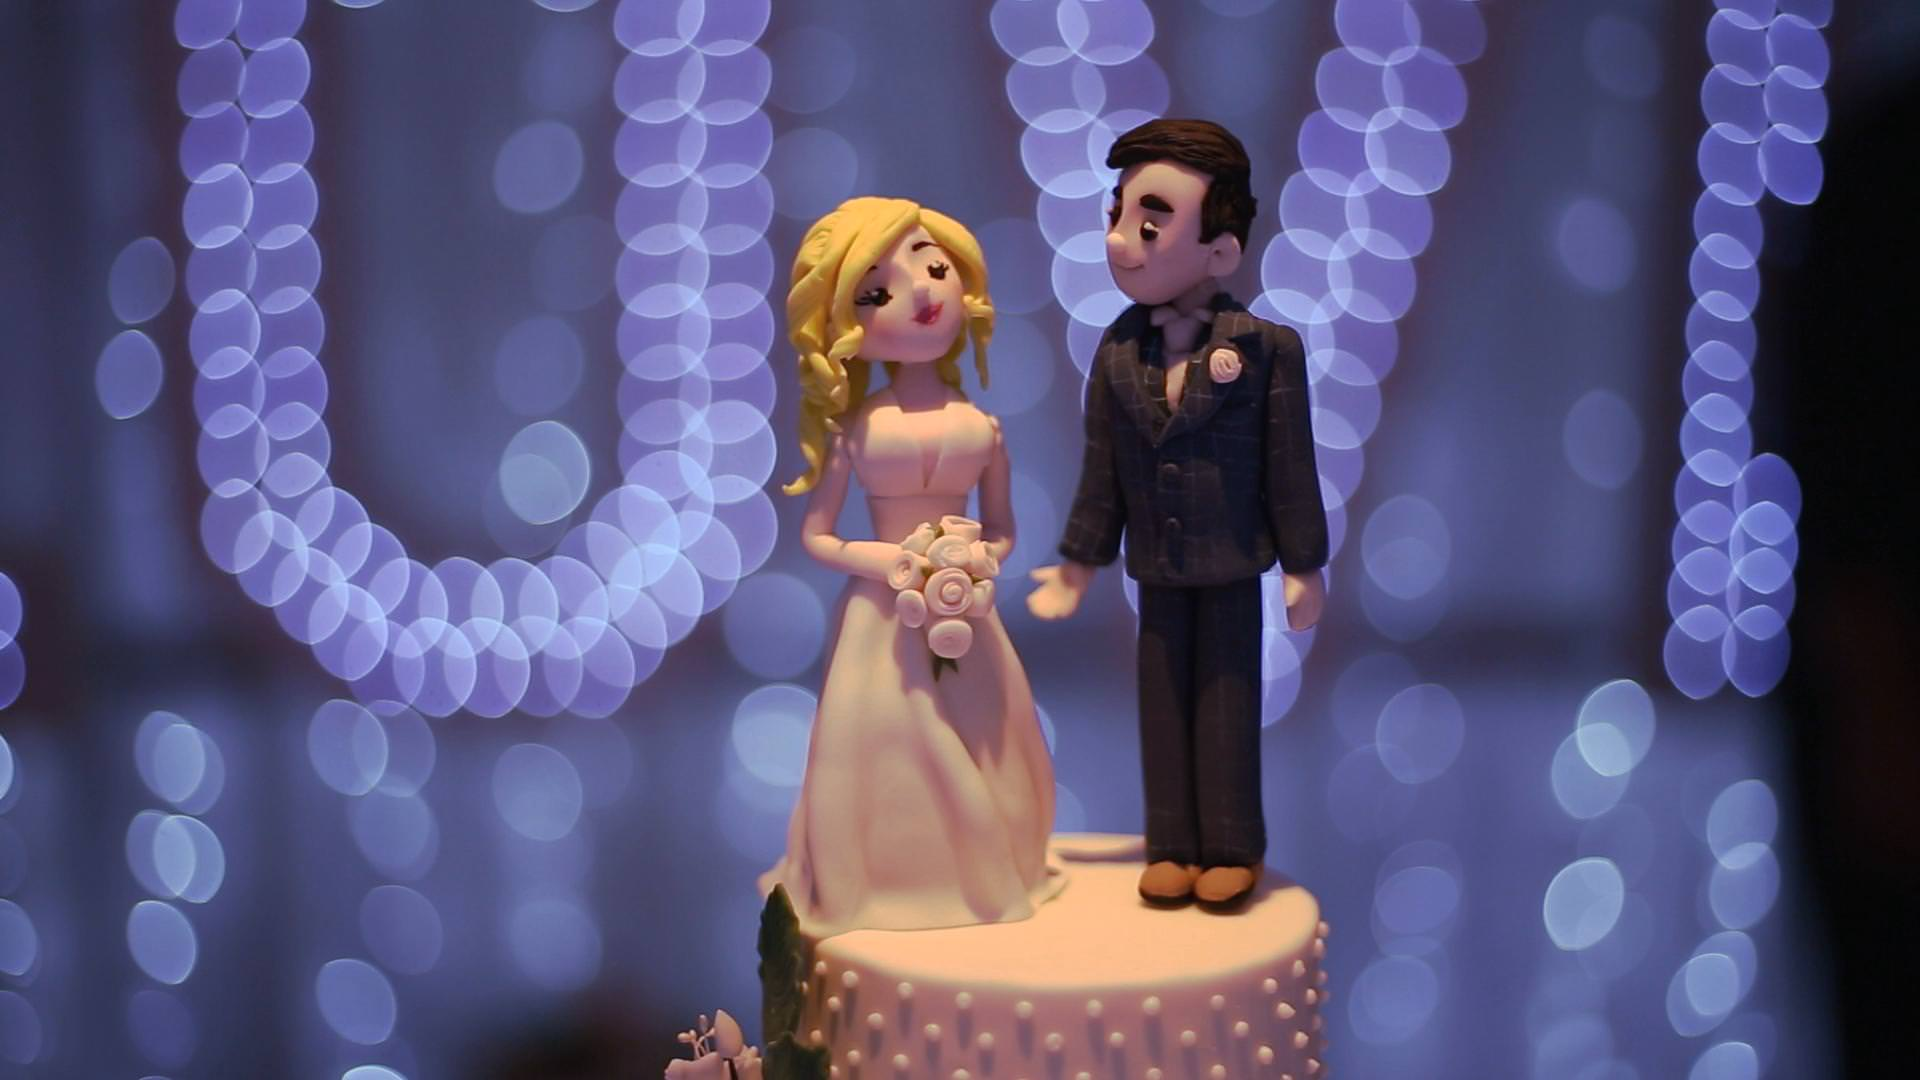 a close up video still of a fun wedding cake topper